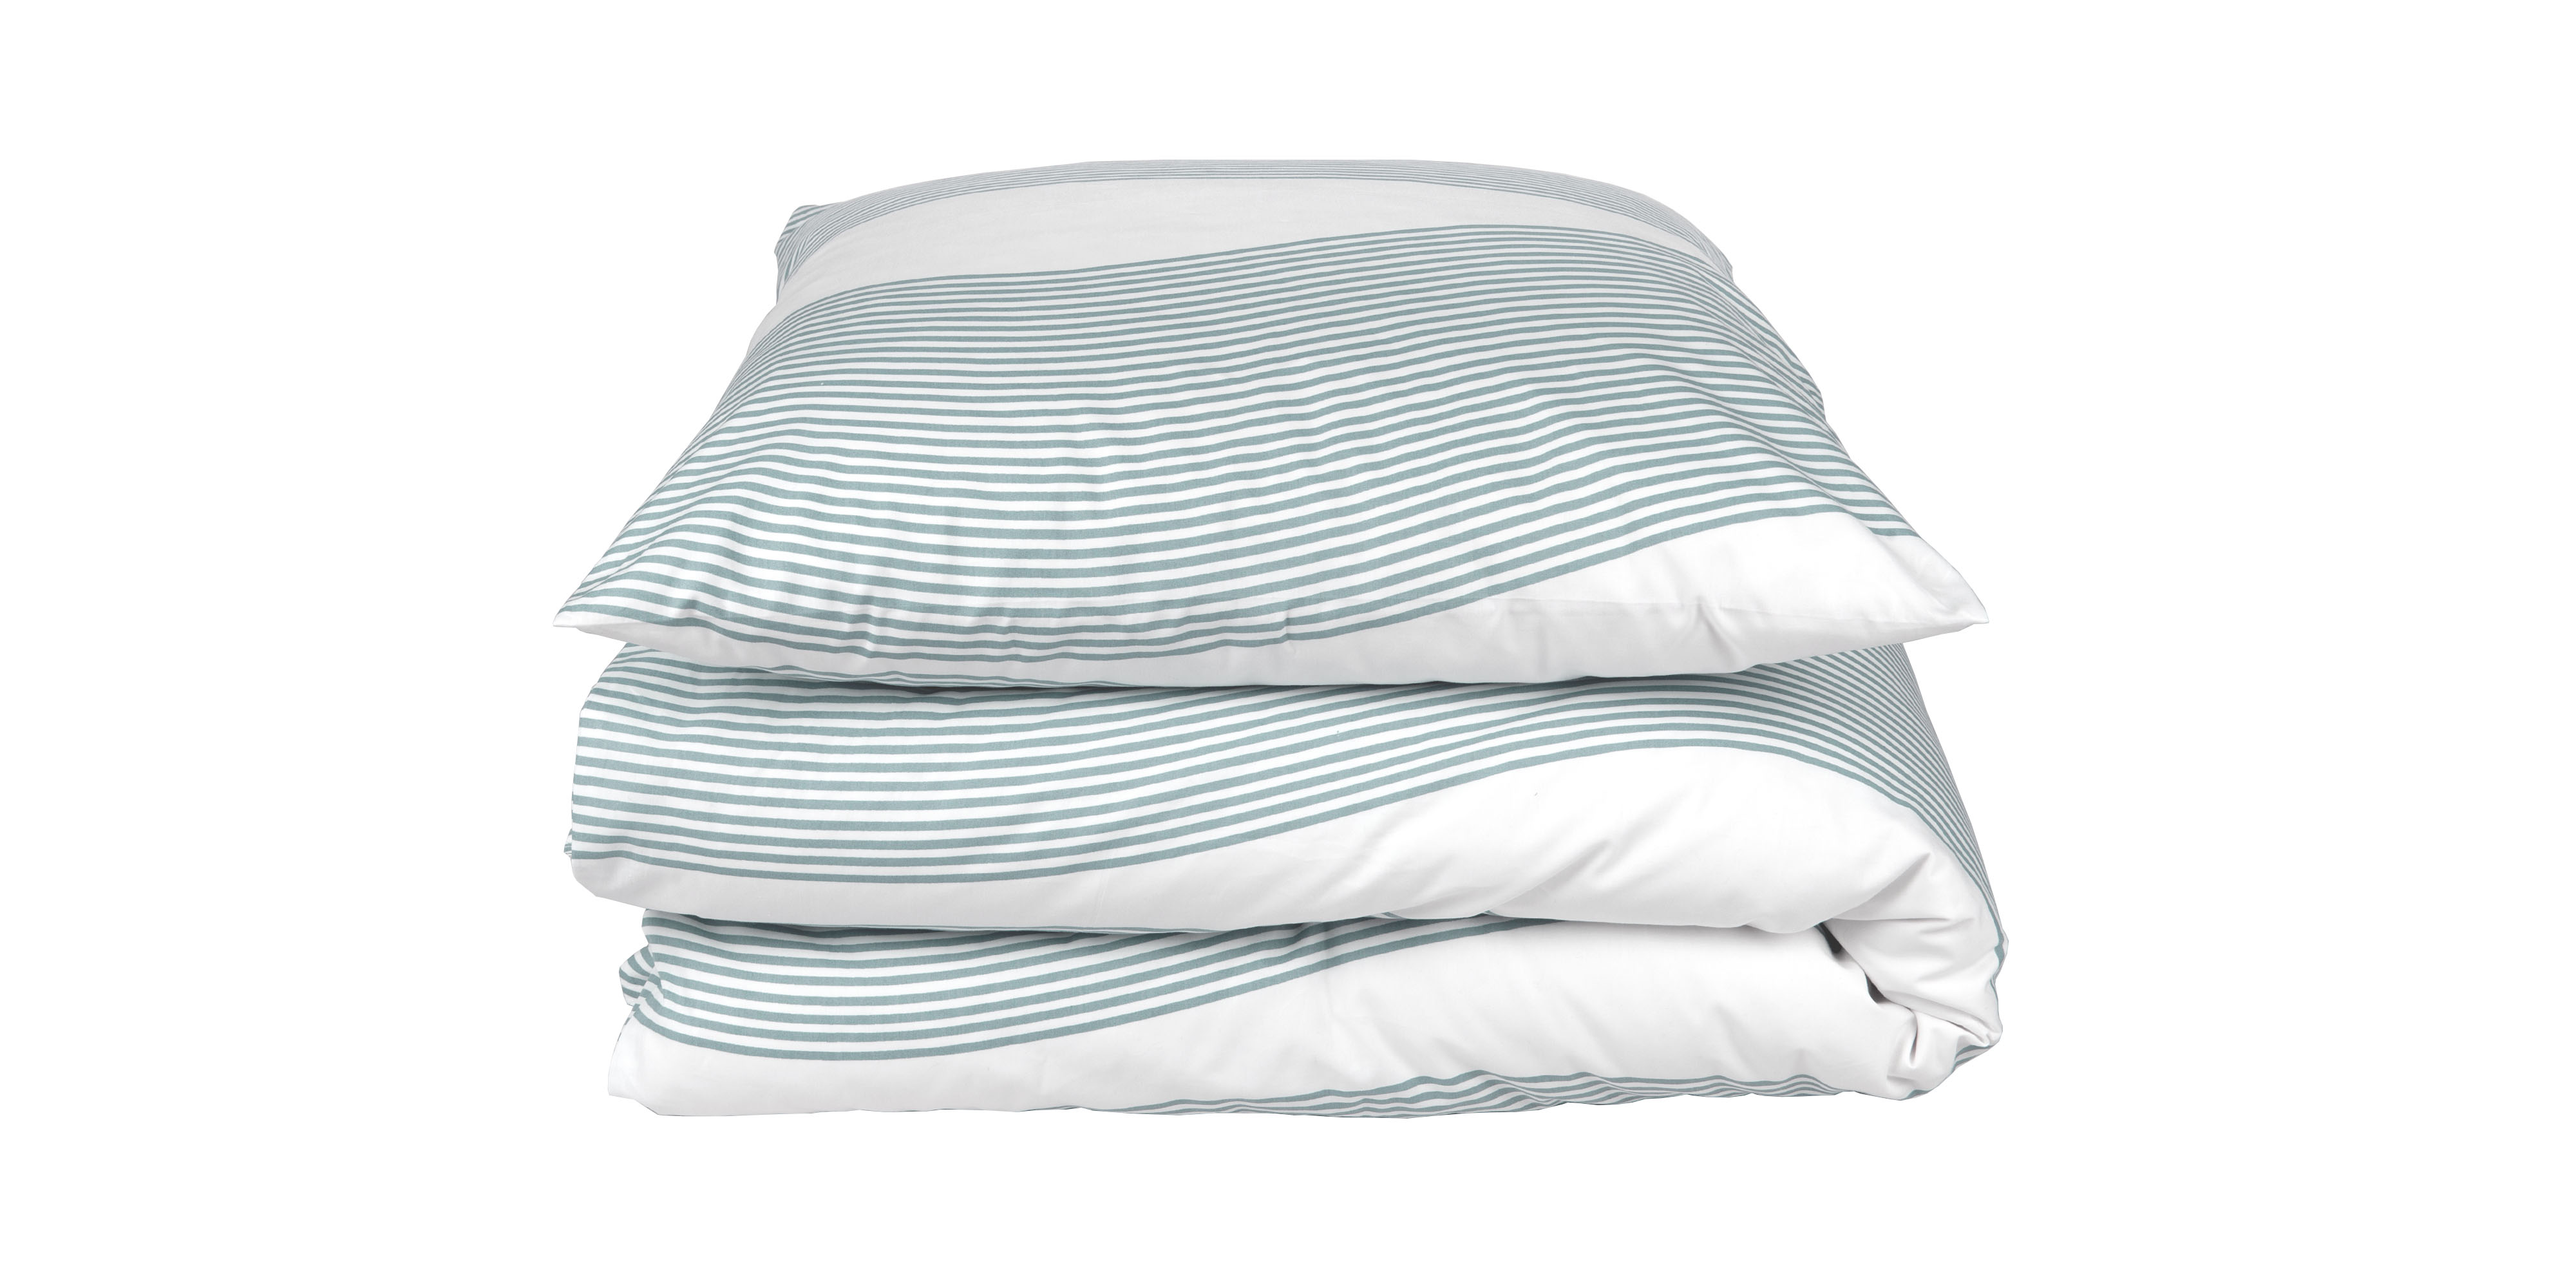 Bed linen River aqua green, Designed by Anne Rosenberg, RosenbergCph